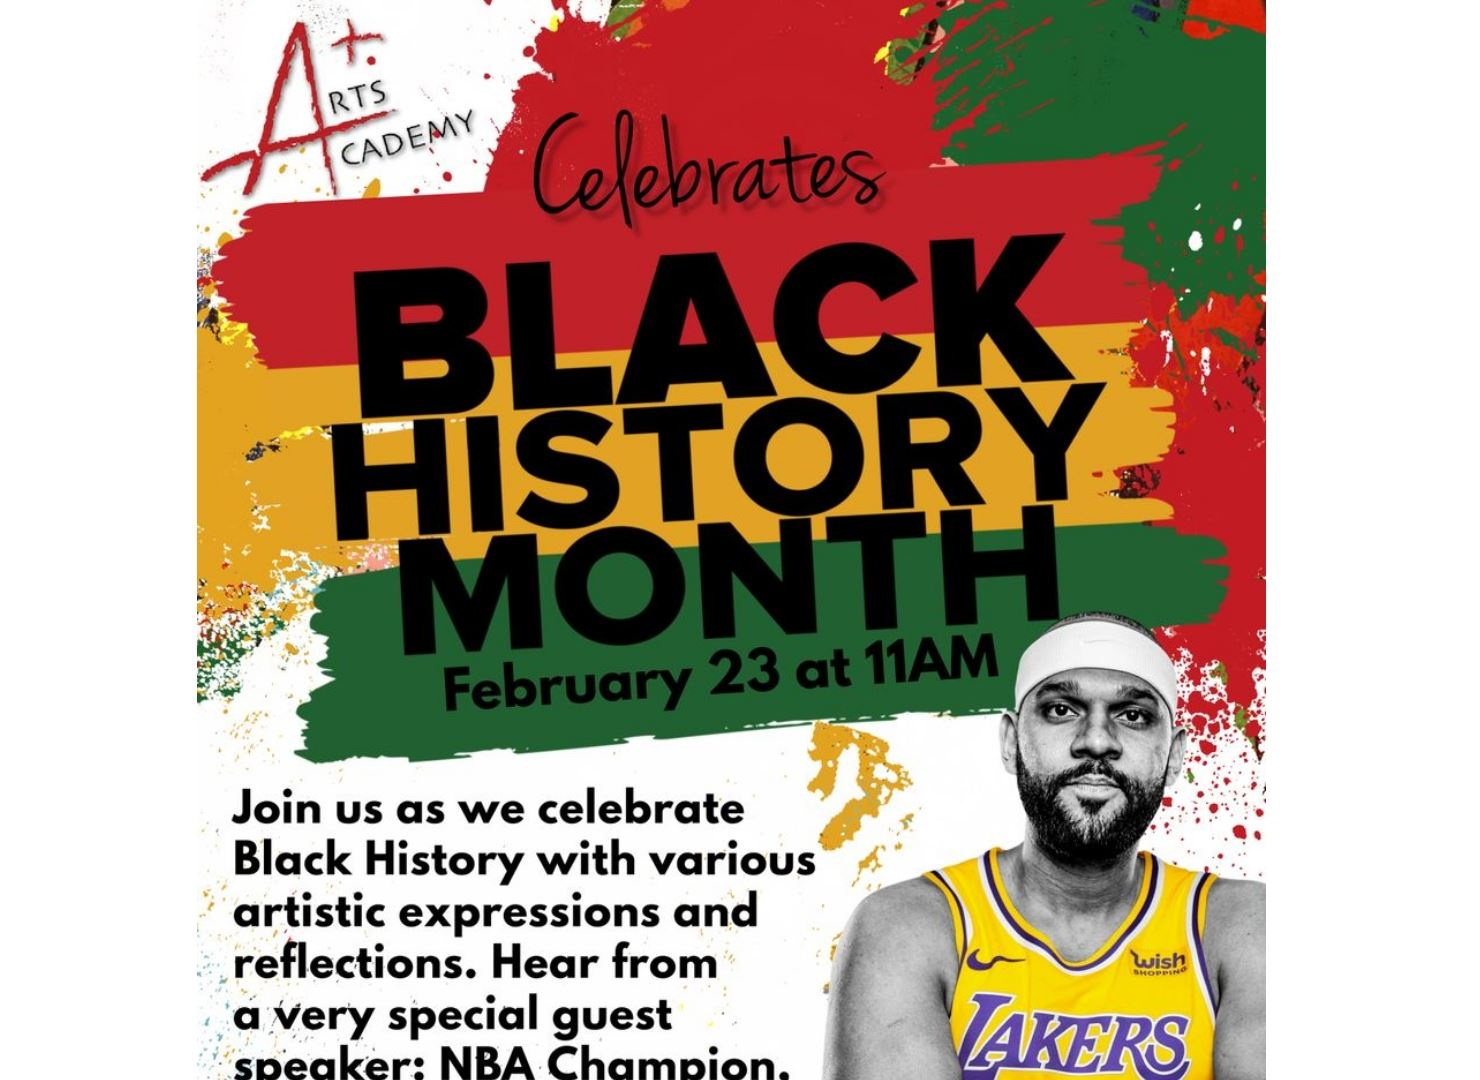 Join us as we honor Black History Month at a special event for A+ Arts Academy families on Tuesday, February 23 at 11:00 a.m.